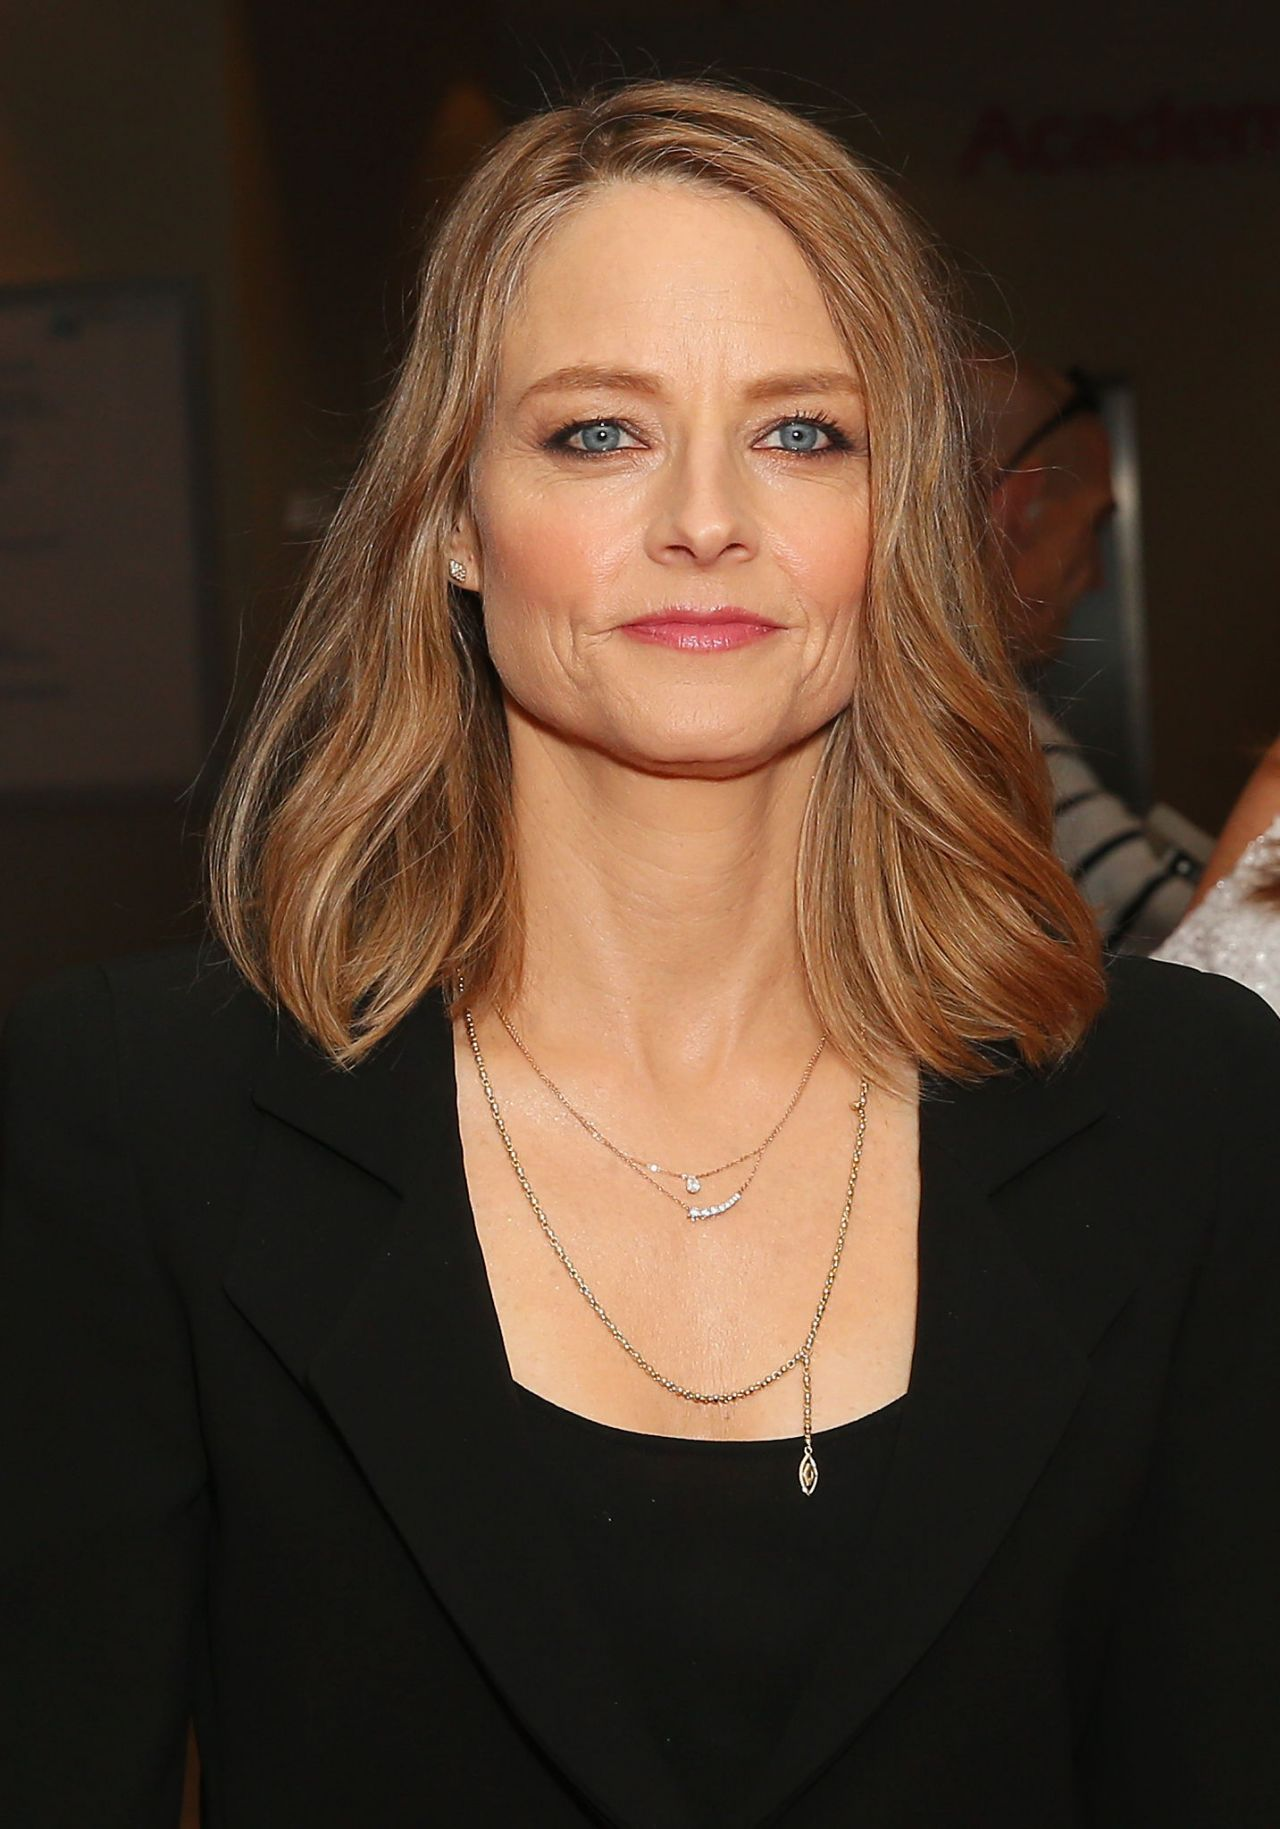 Jodie Foster Money Monster Australian Premiere In Sydney 5302016